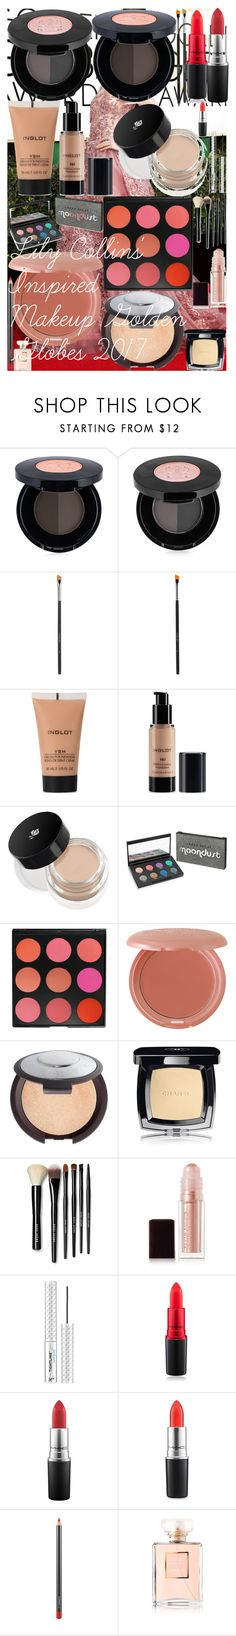 Lily Collins' Inspired Makeup Golden Globes 2017 by oroartye-1 on Polyvore featuring beauty, Bobbi Brown Cosmetics, Urban Decay, Becca, Chanel, MAC Cosmetics, Inglot, Kevyn Aucoin, Stila and It Cosmetics